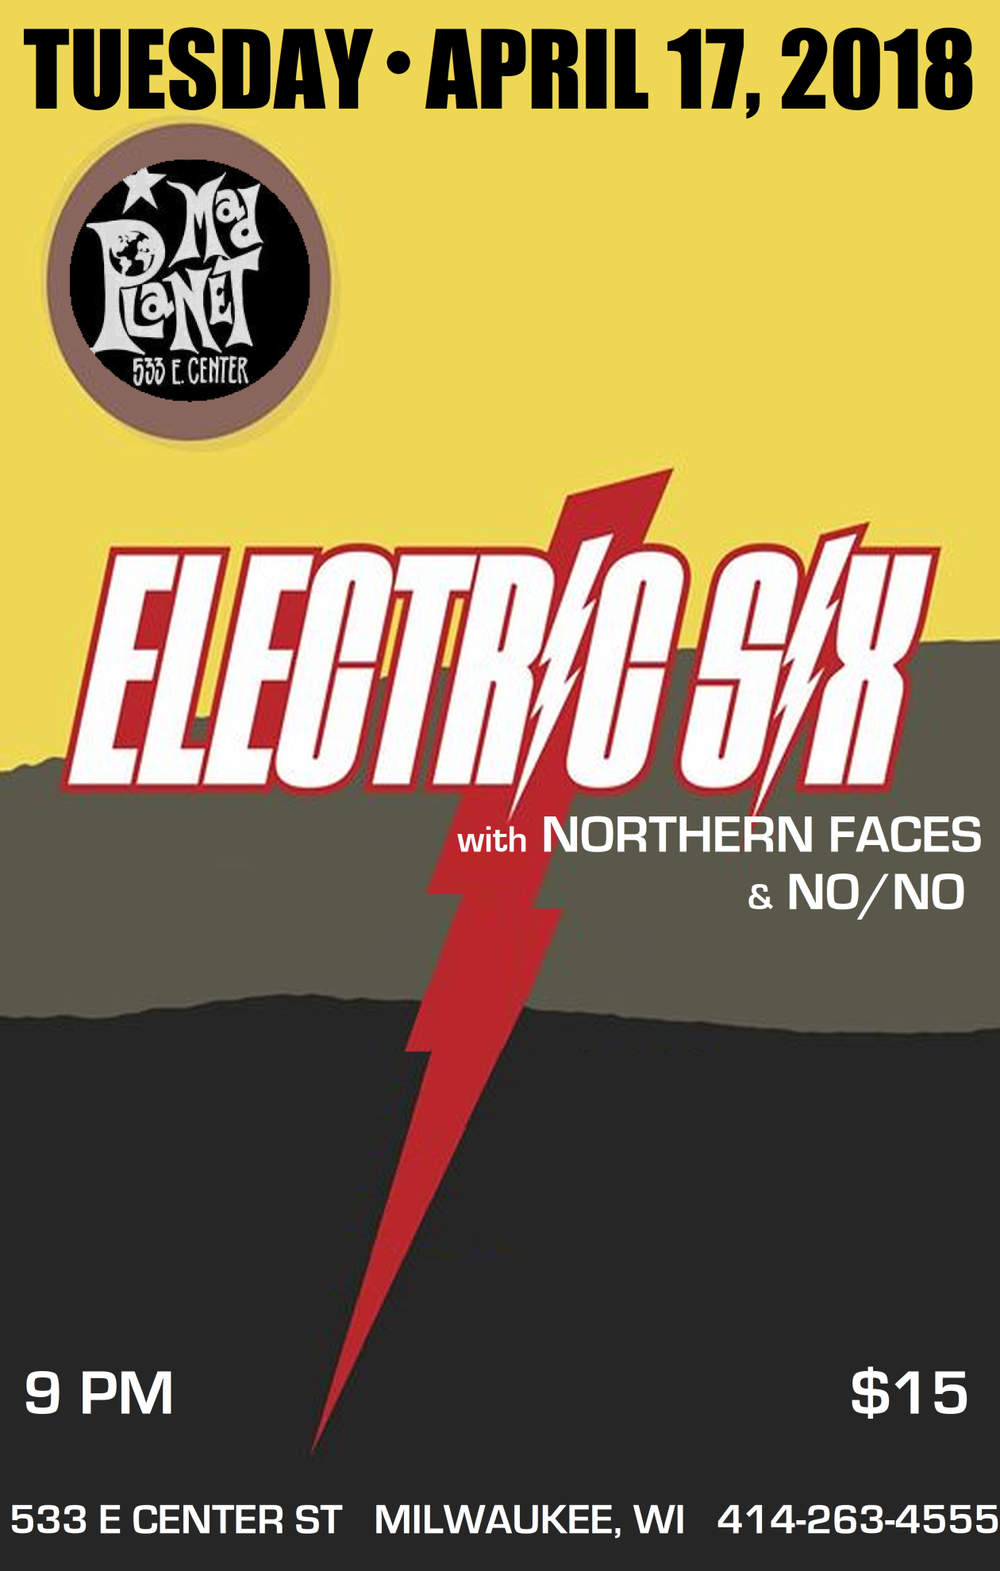 Electric Six 04-17-18 11x17 POSTER.png